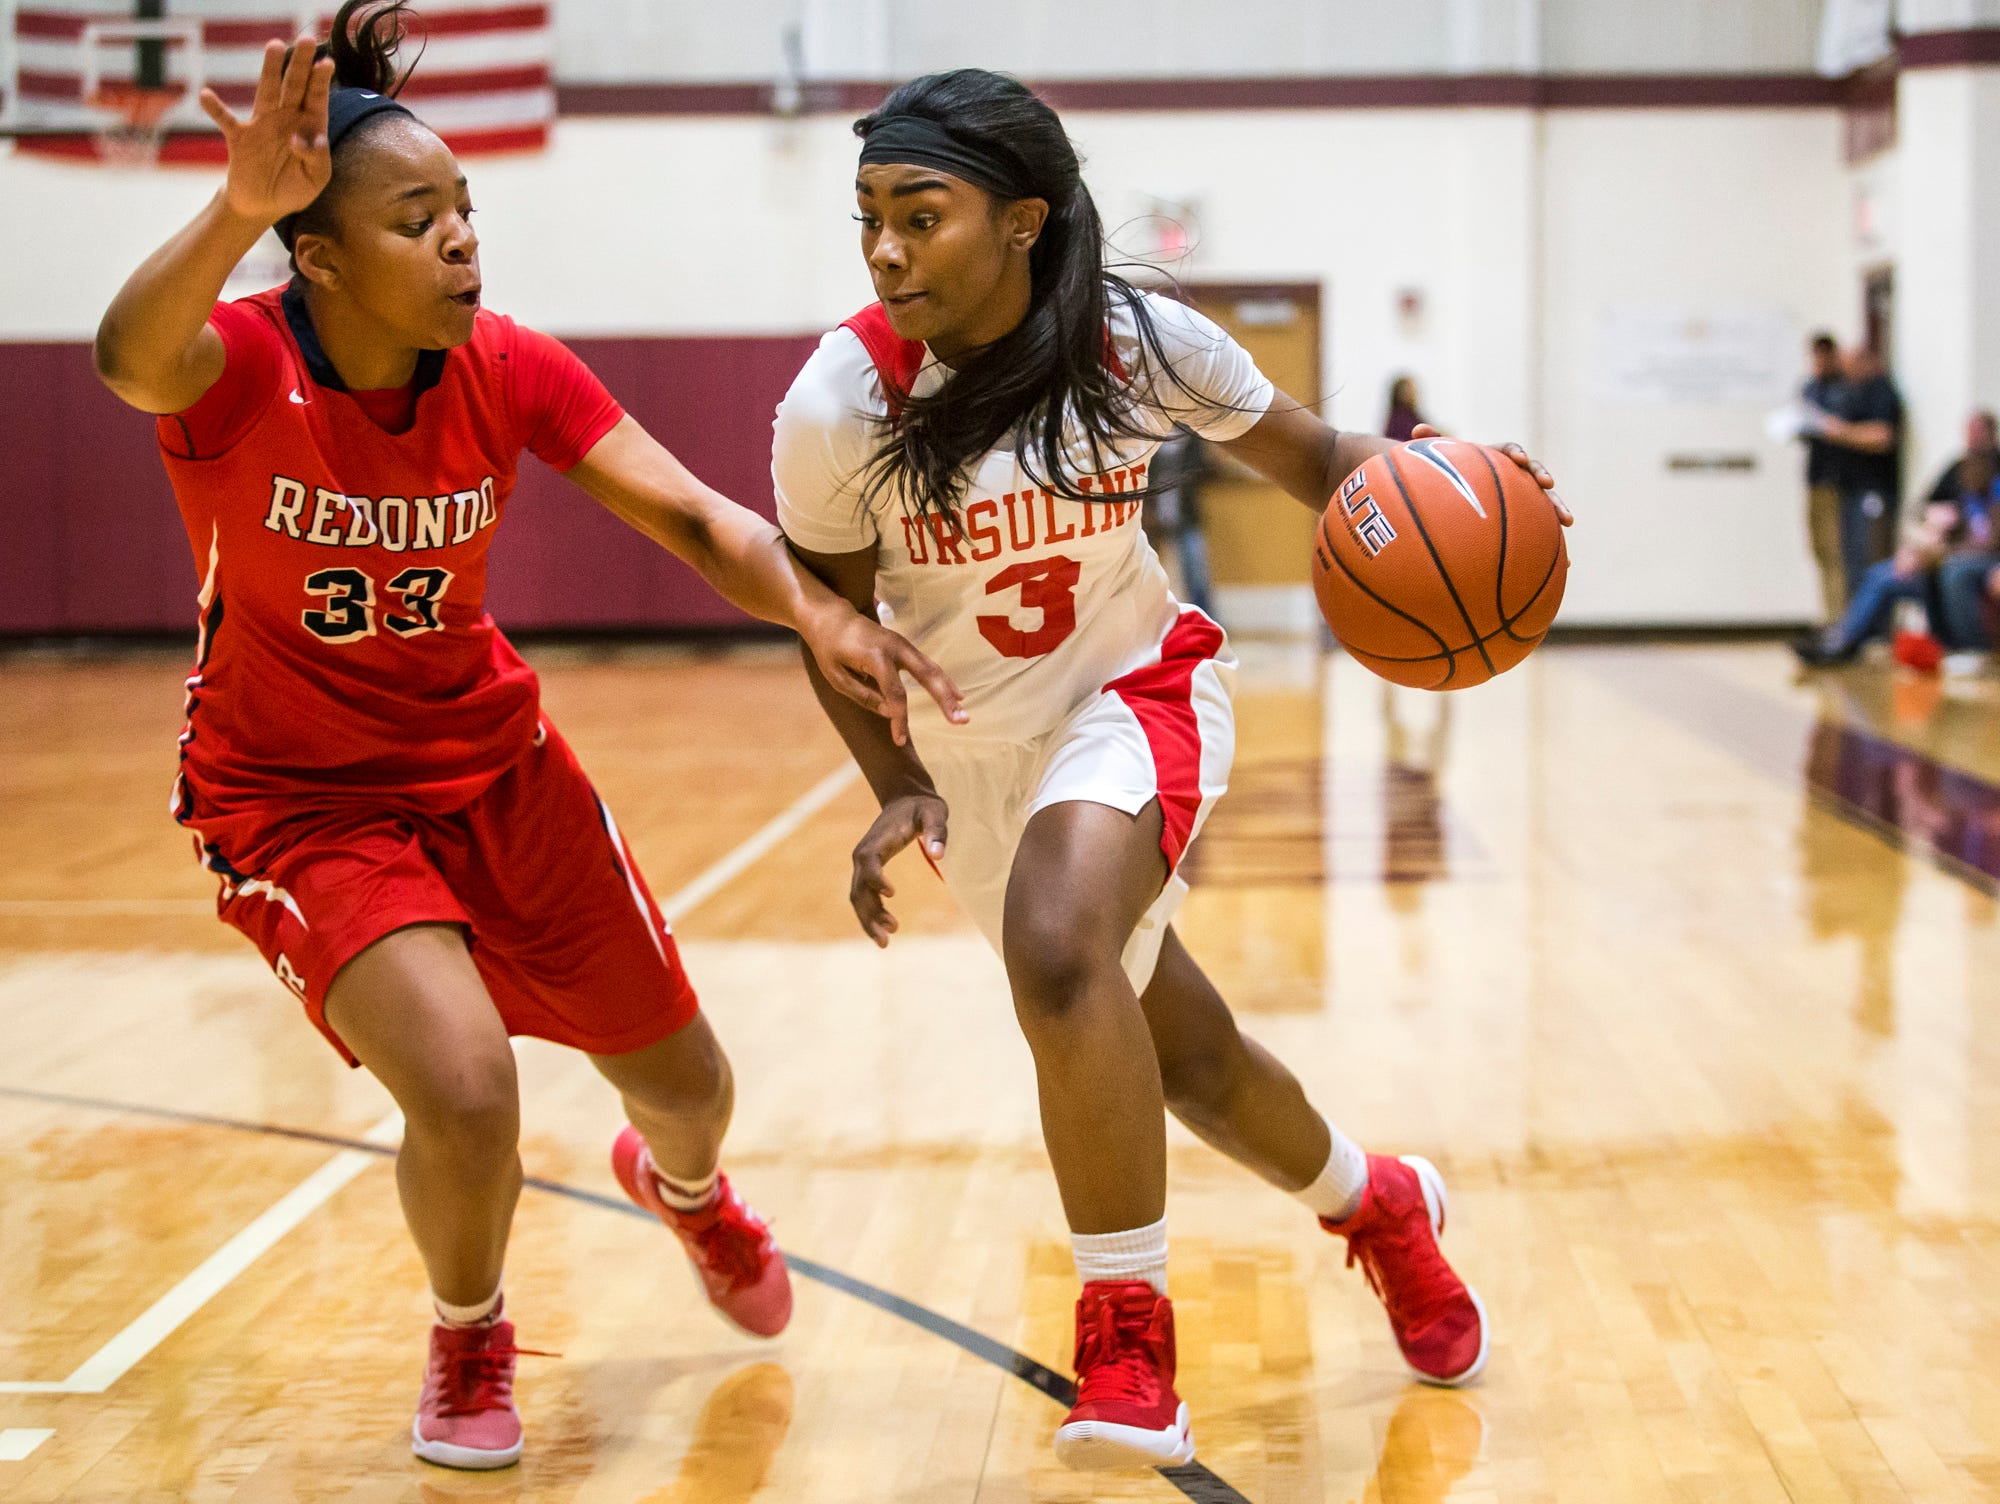 Ursuline's Yanni Hendley-Mccalla drives to the basket against Redondo Union's Nicole Swift in the first half of Ursuline's 39-26 win over Redondo Union High School in the Diamond State Classic at St. Elizabeth High School in Wilmington on Tuesday night.